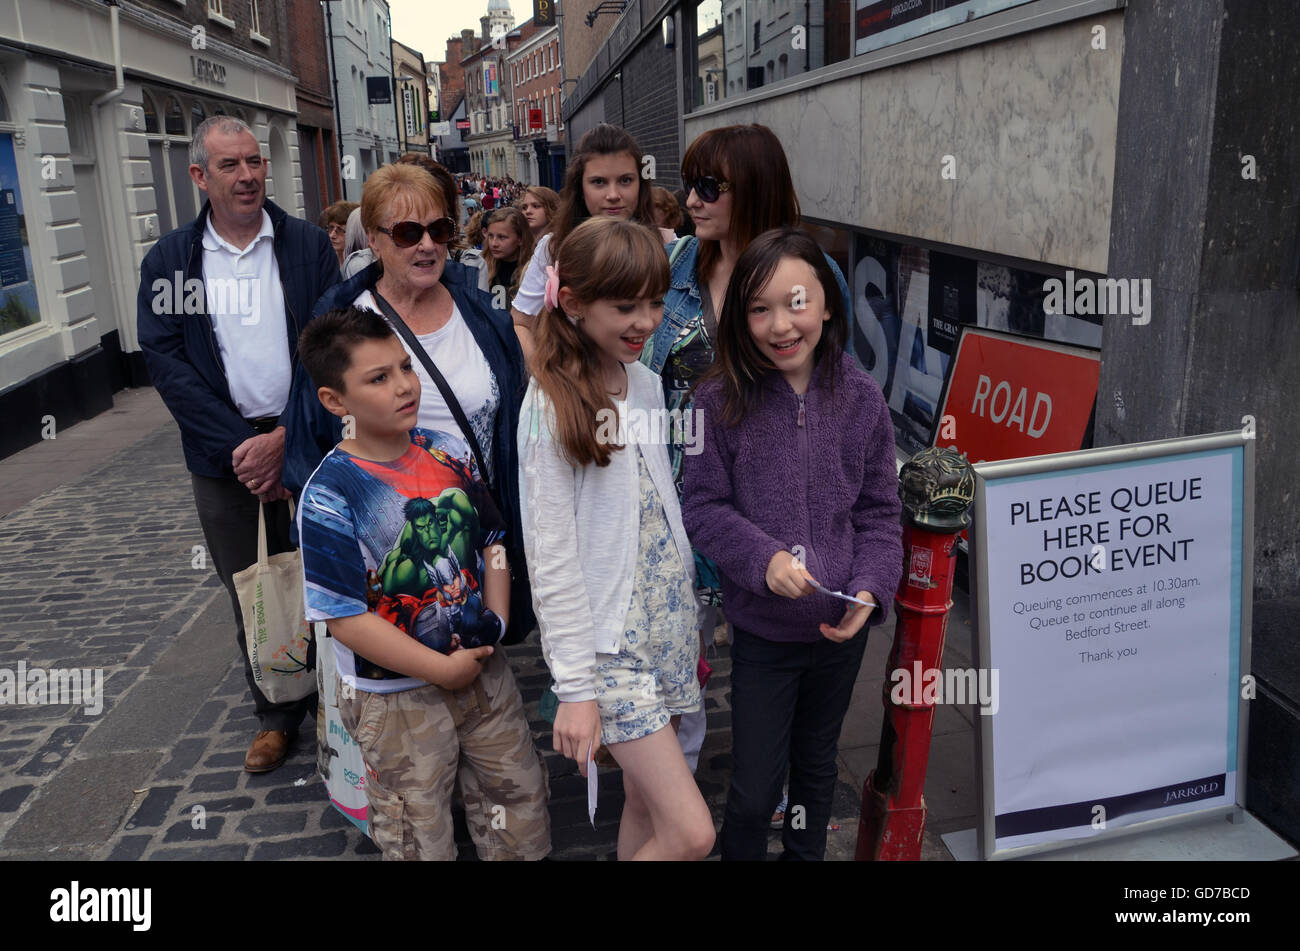 People queuing for Tanya Burr, blogger, book signing outside Jarrolds, Norwich July 2016 UK - Stock Image